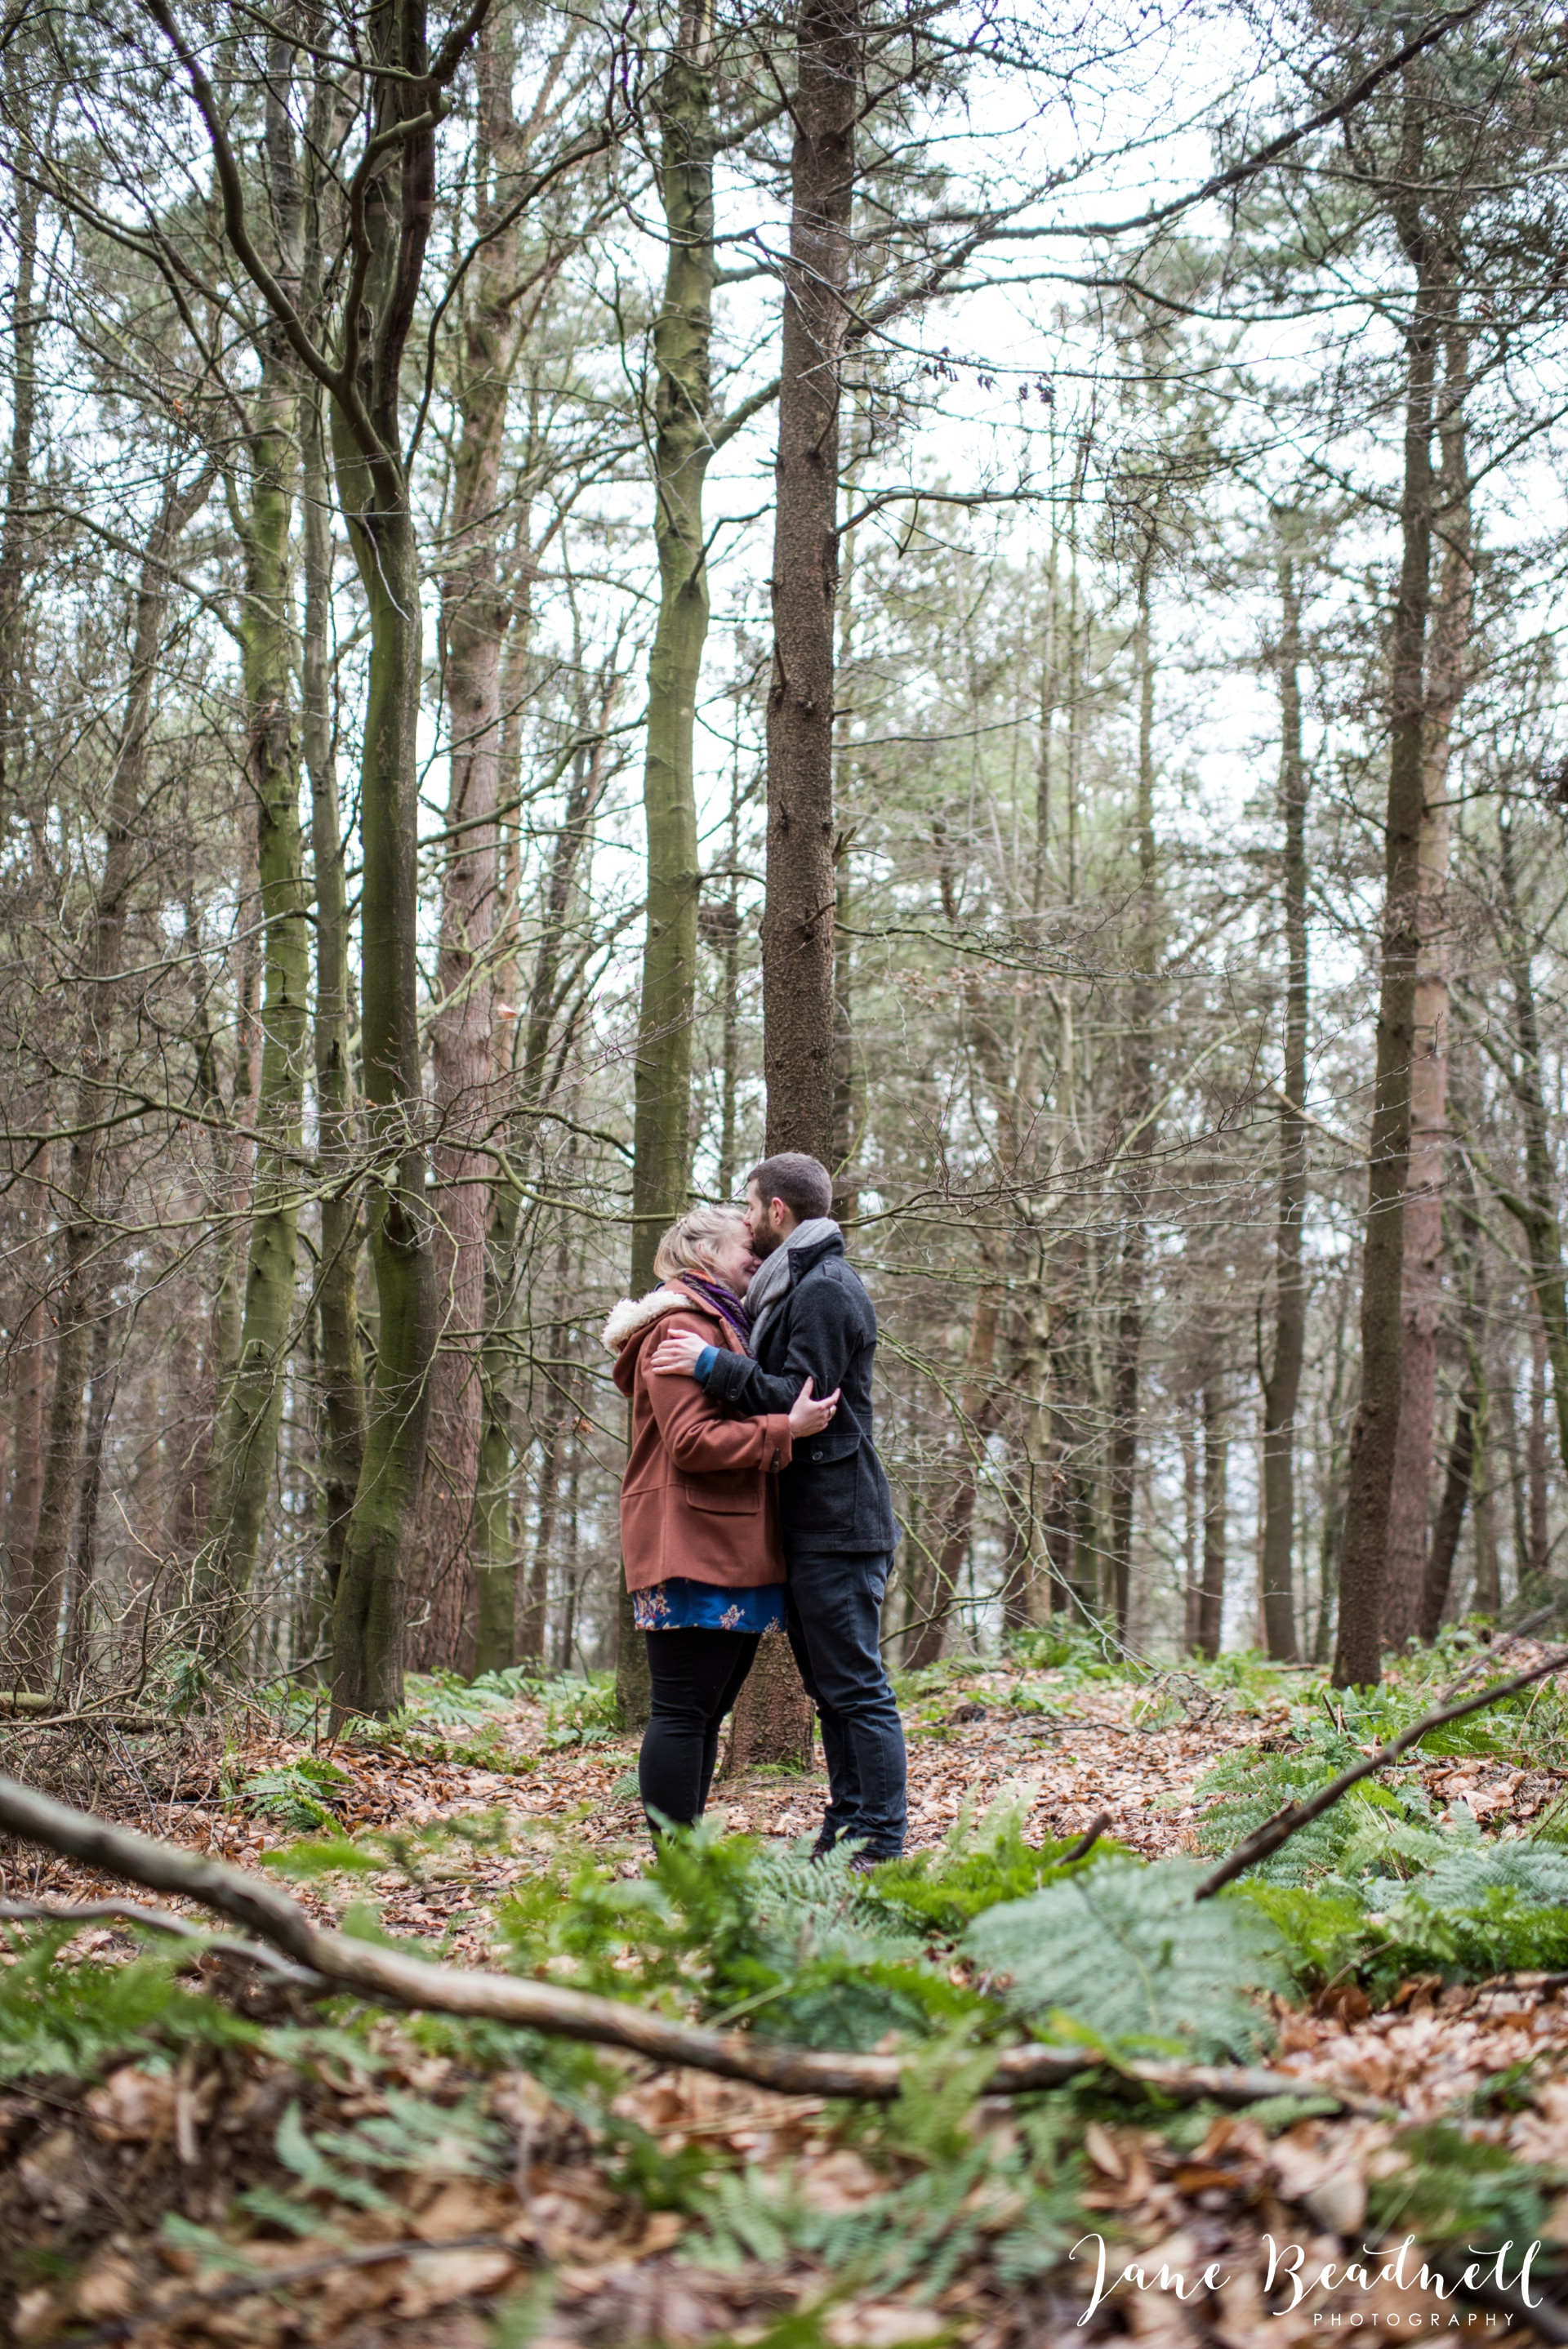 engagement photography Chevin jane beadnell wedding photographer Otley_0032